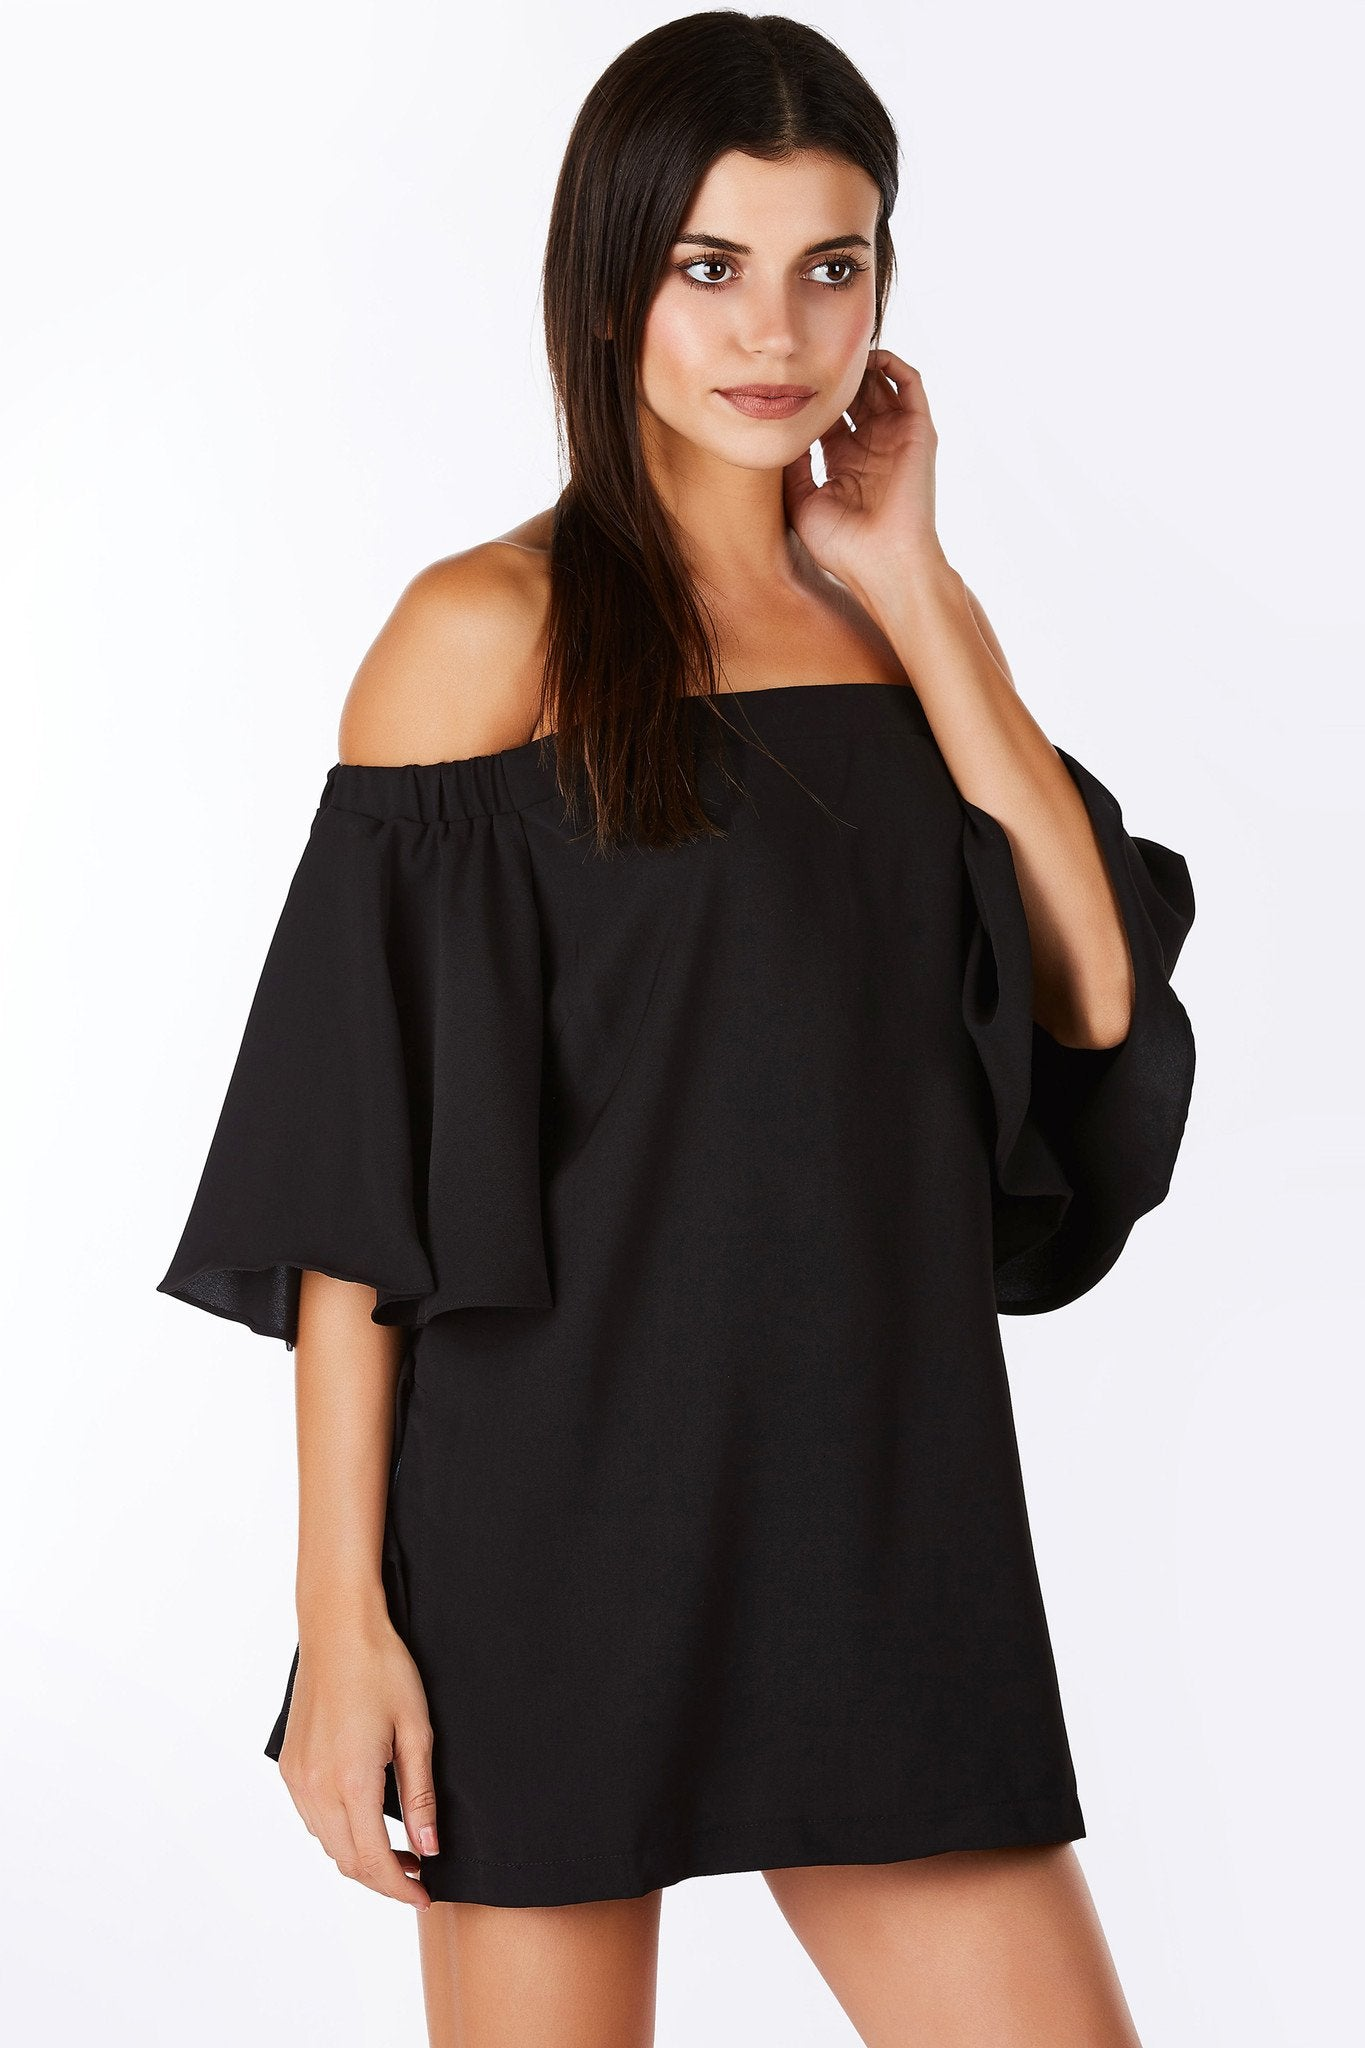 A classy off shoulder blouse with chic, flared short sleeves. Gorgeous material, feels amazing against the skin. Features slits on each side for a trendy touch. Single hidden zipper down the back for closure.